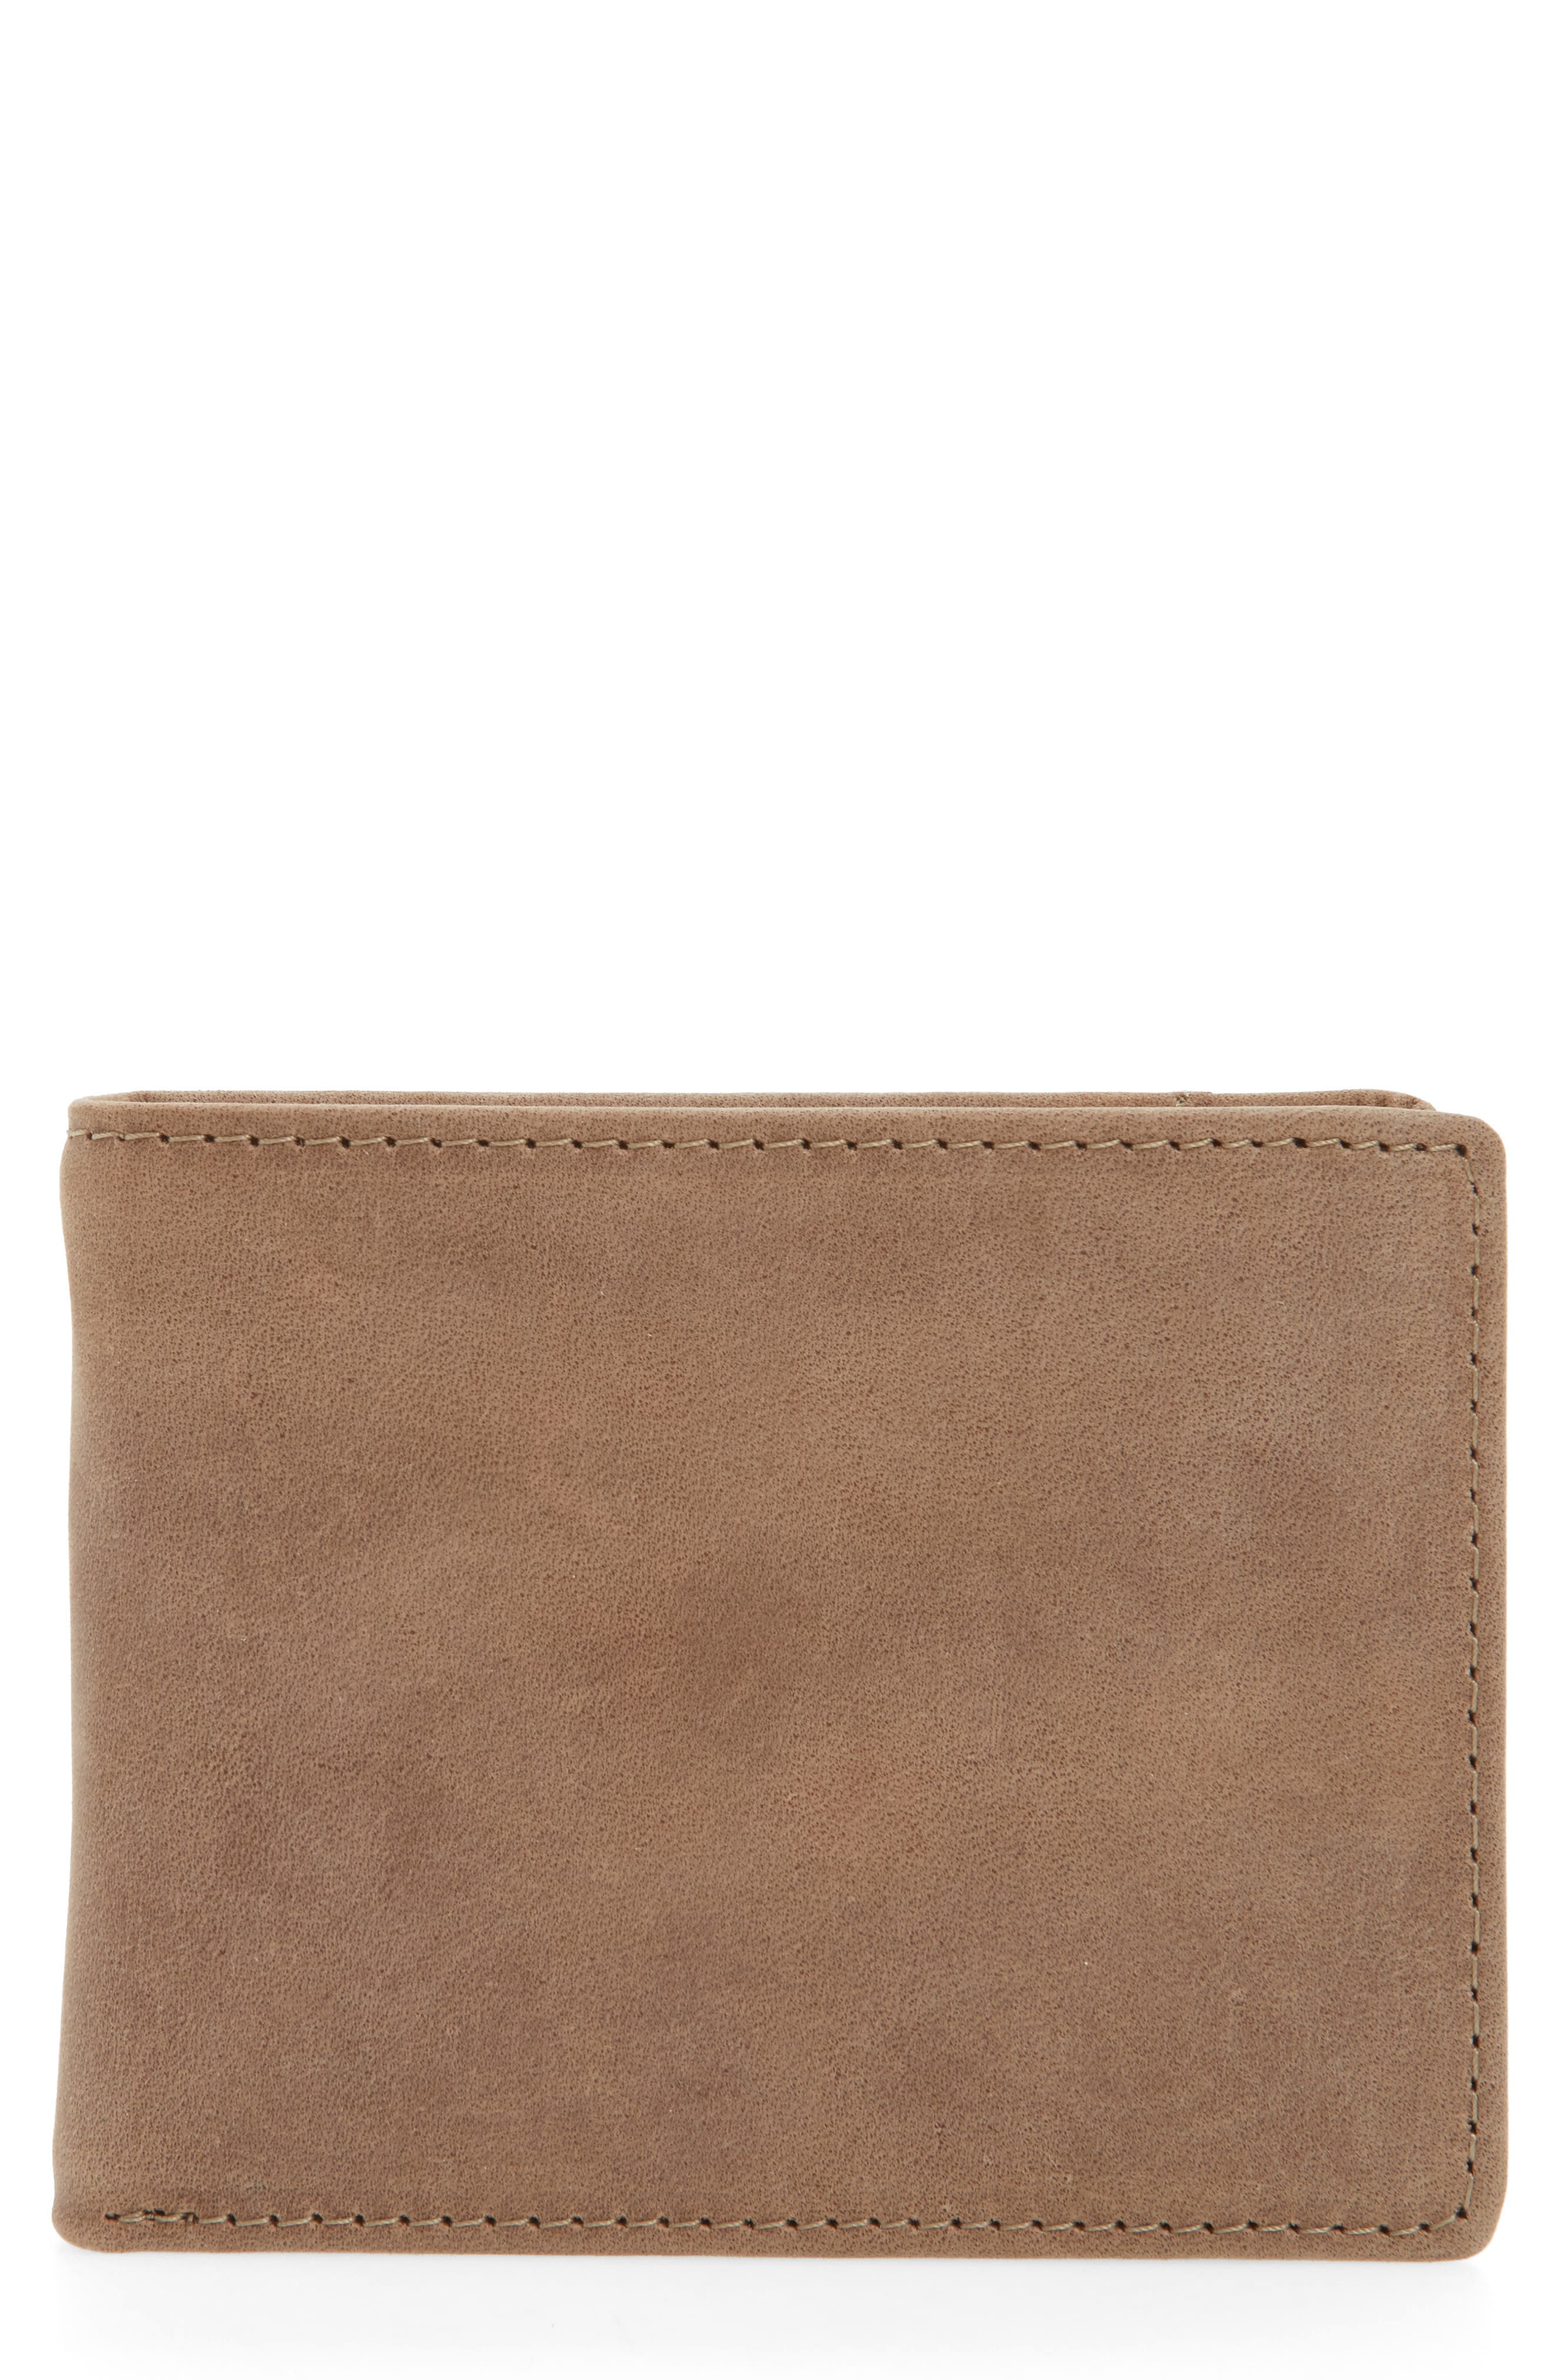 Alternate Image 1 Selected - Nordstrom Men's Shop Upton Leather Wallet